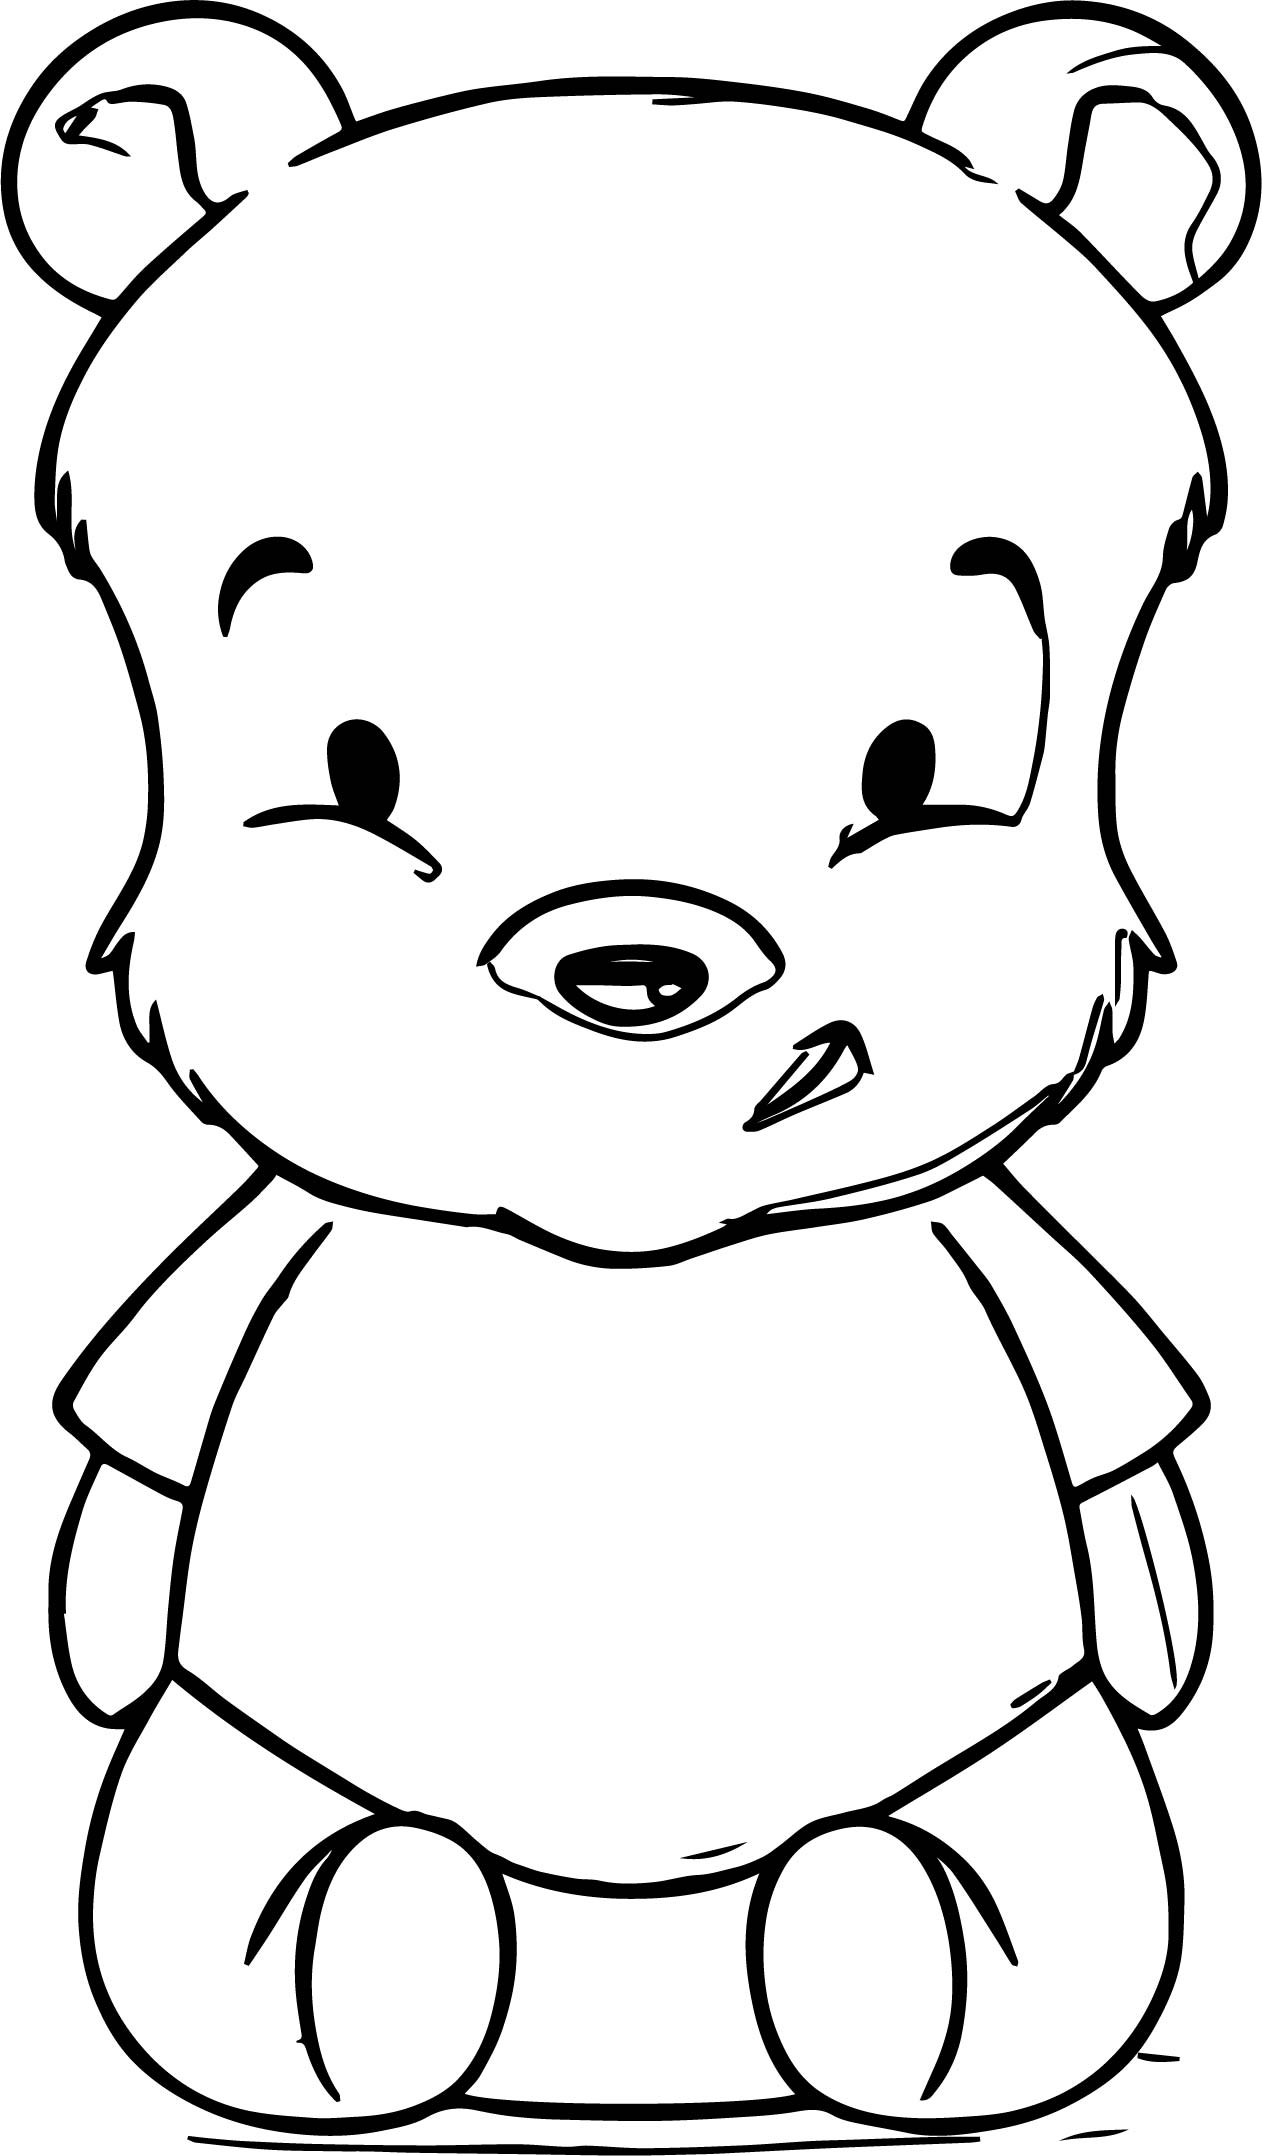 pooh bear coloring page how to draw baby pooh coloring page wecoloringpagecom page bear coloring pooh